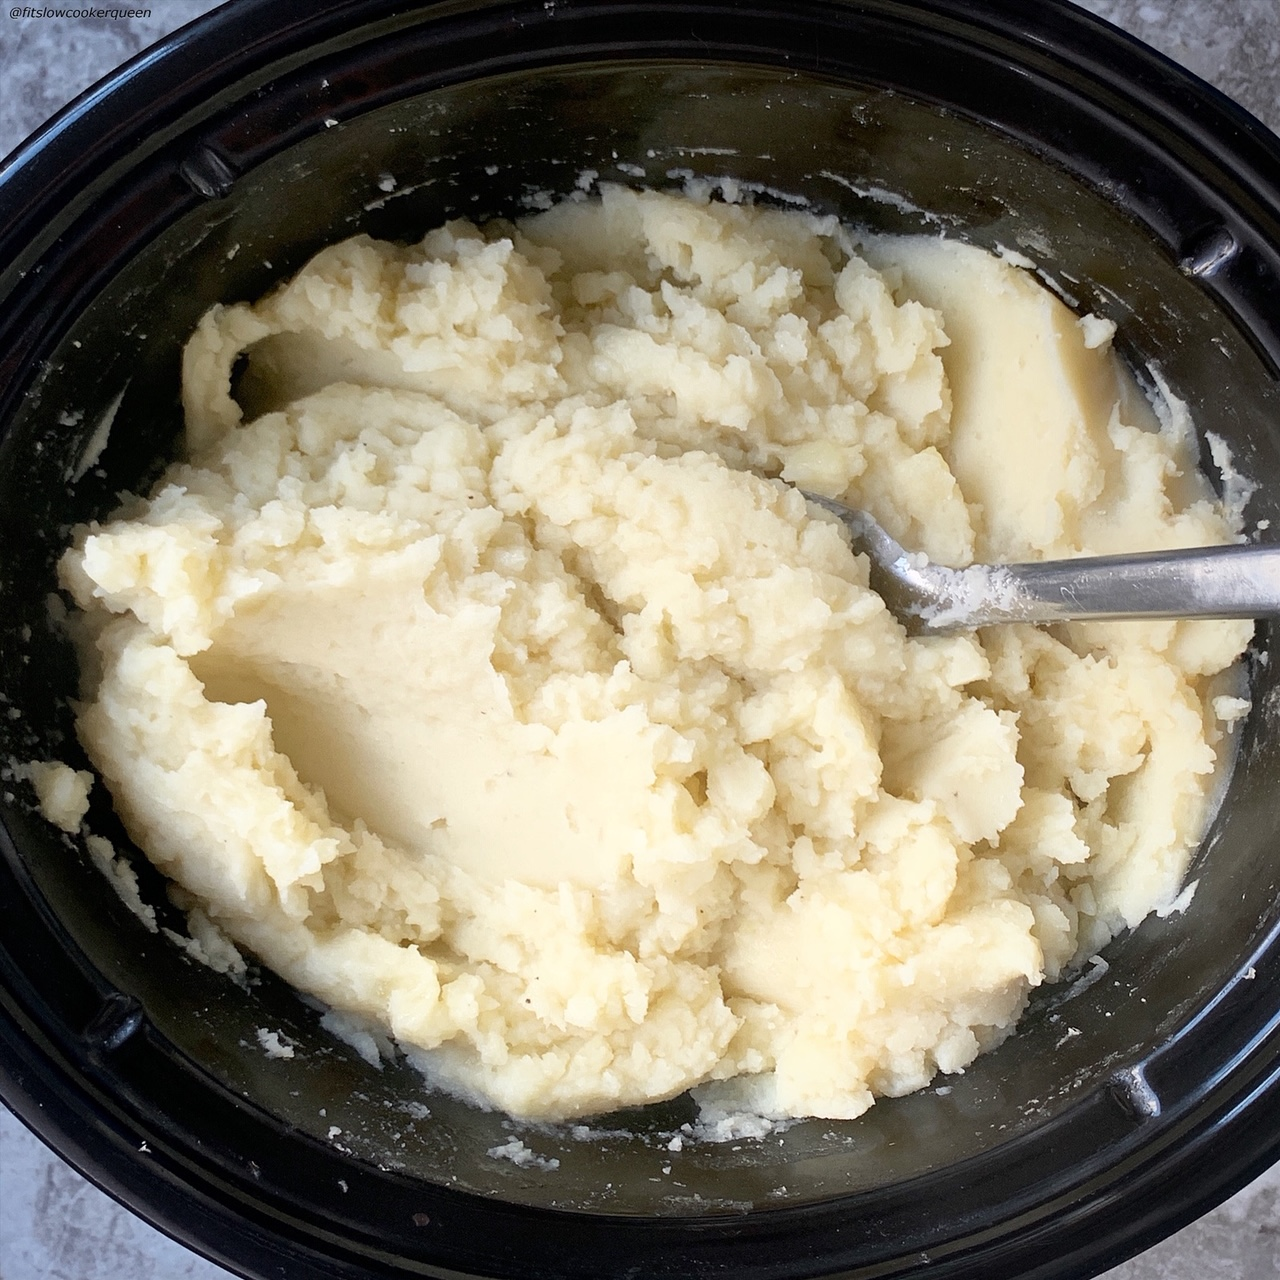 cooked potatoes in the slow cooker that have been mashed